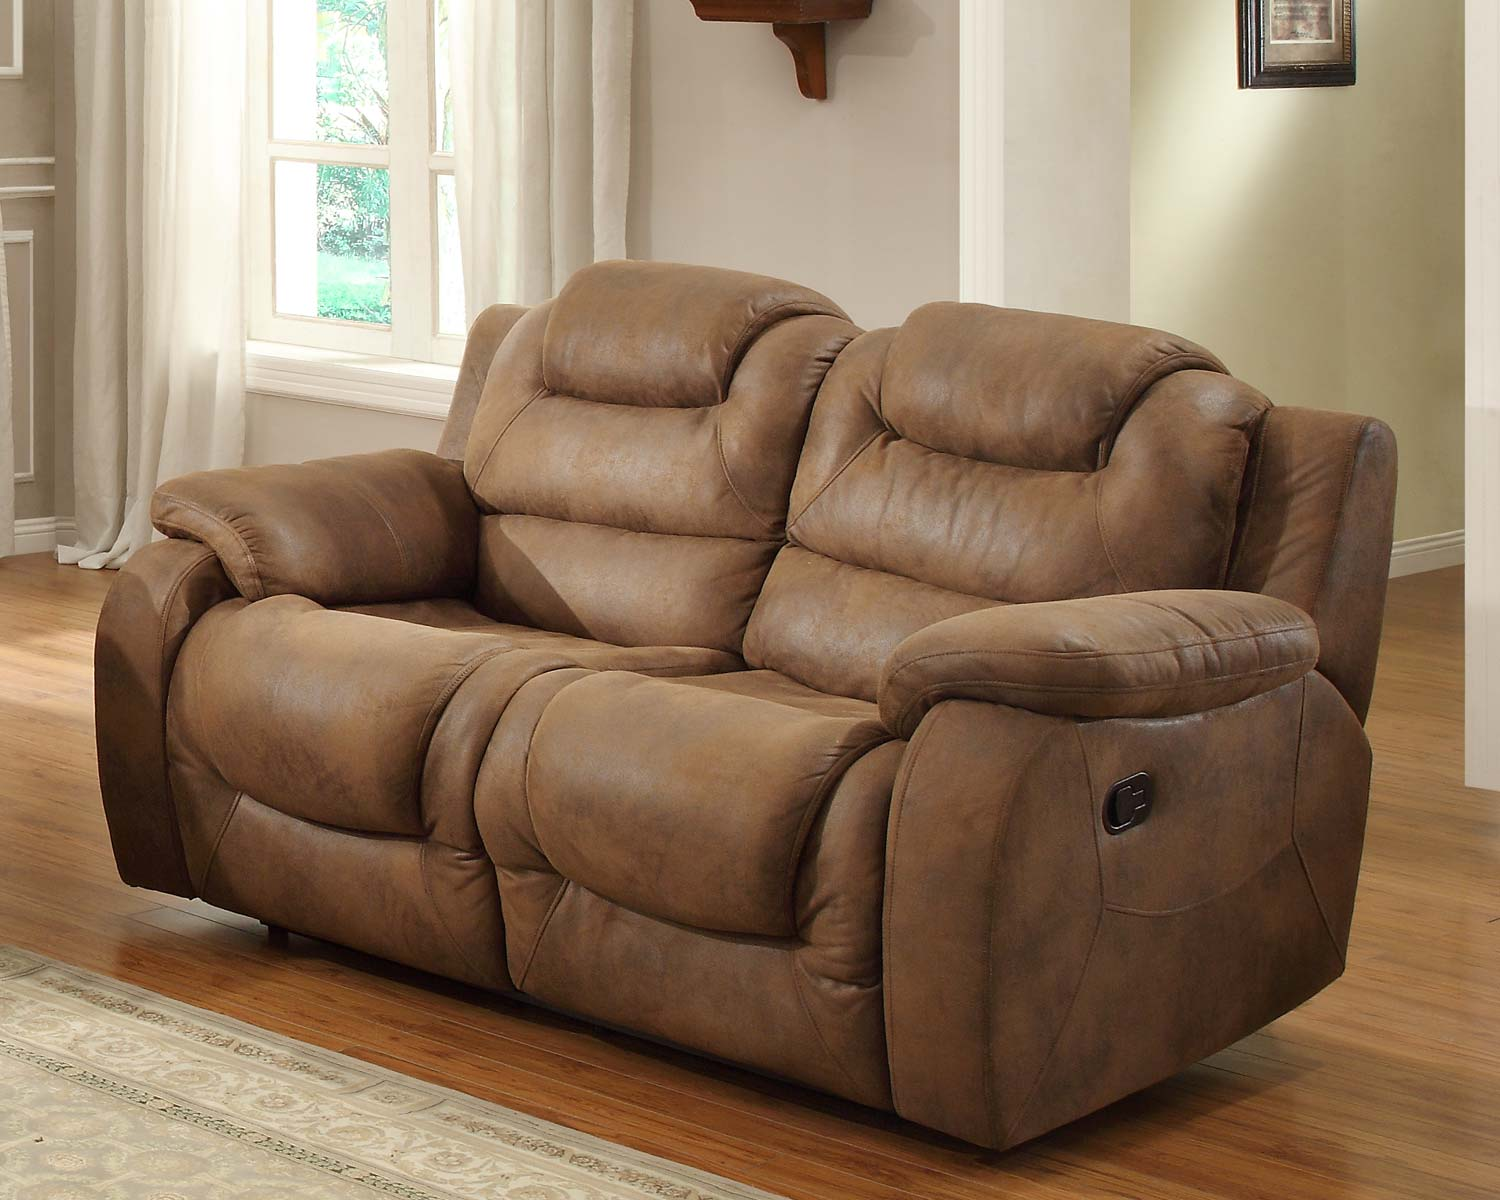 Hoyt Double Recliner Love Seat   Brown Microfiber